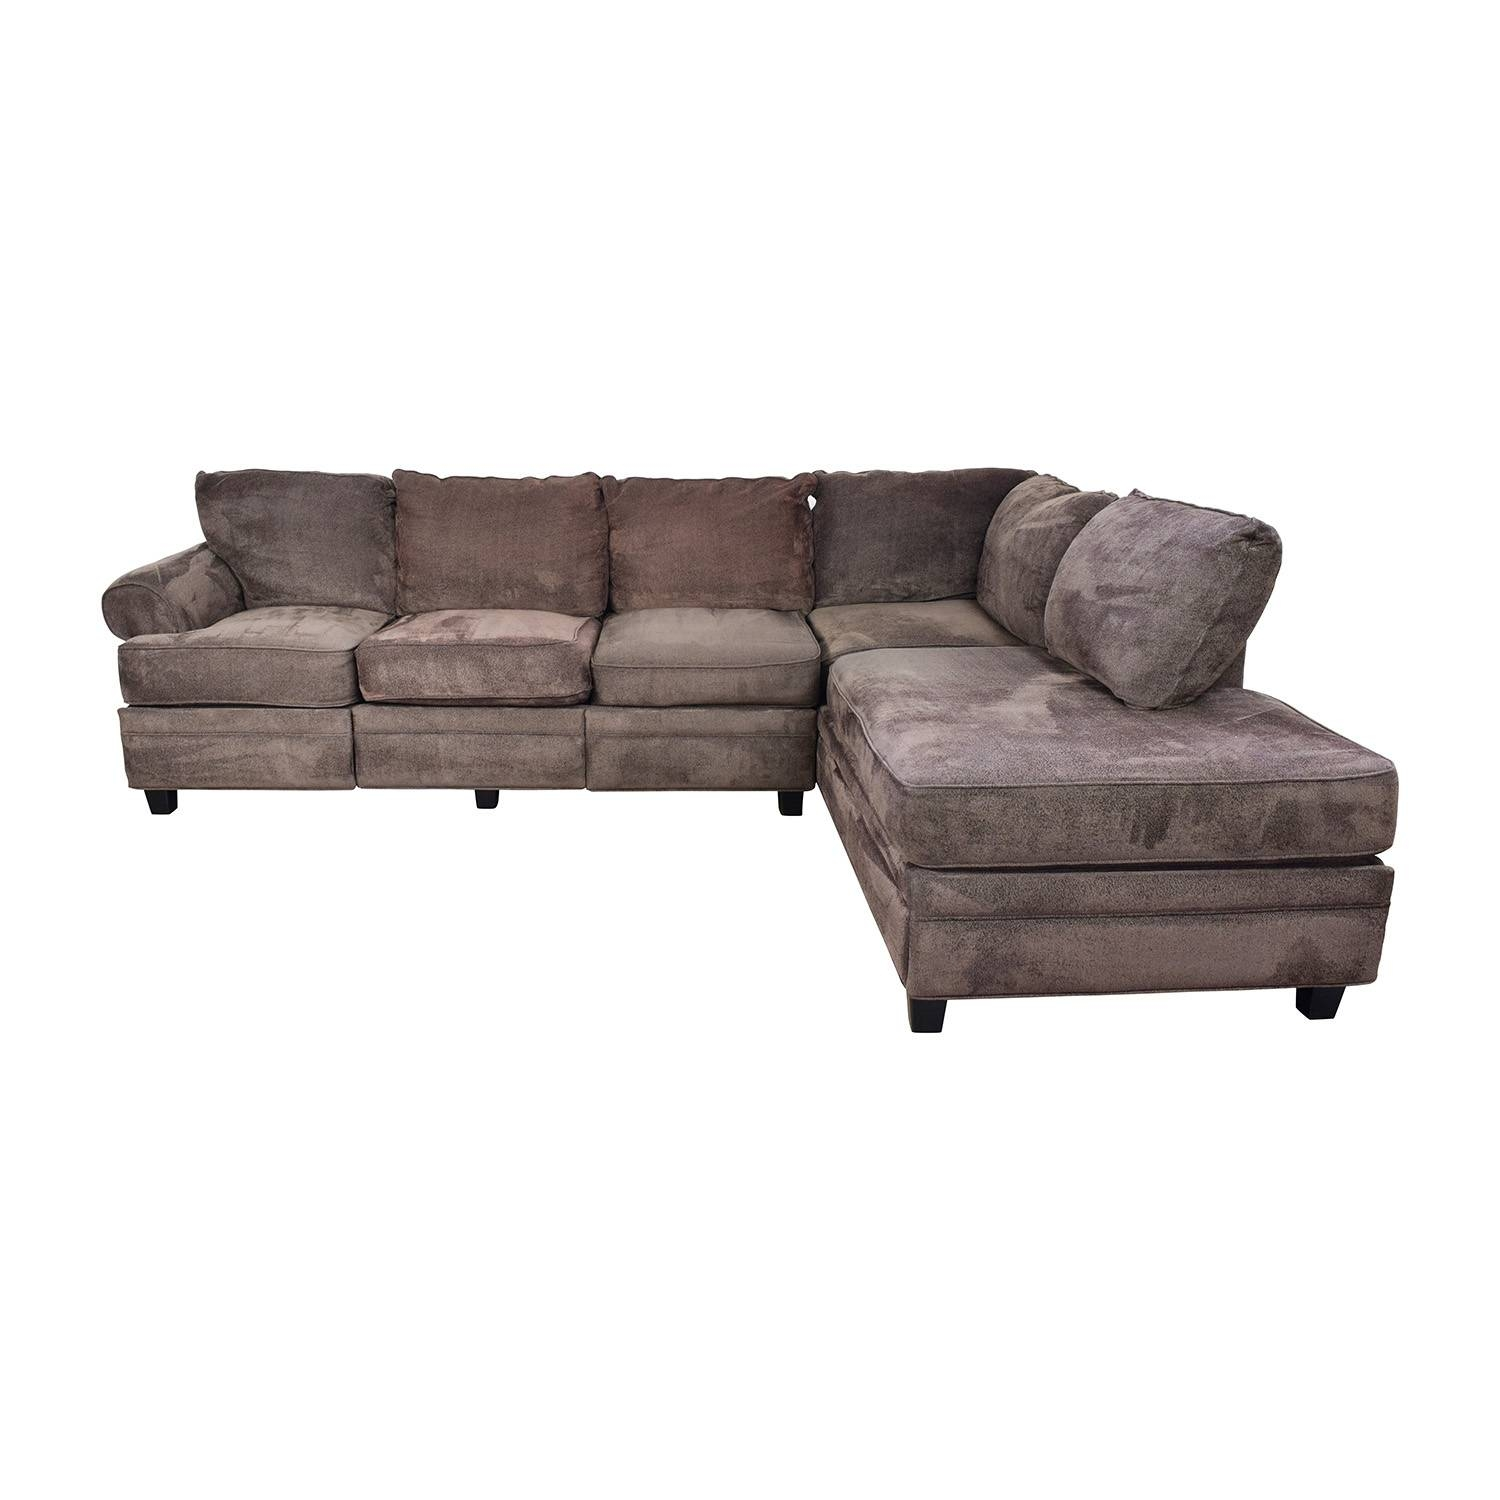 Awesome Used Sectional Sofa Sale 95 With Additional Jennifer Sofas throughout Jennifer Sofas and Sectionals (Image 5 of 15)